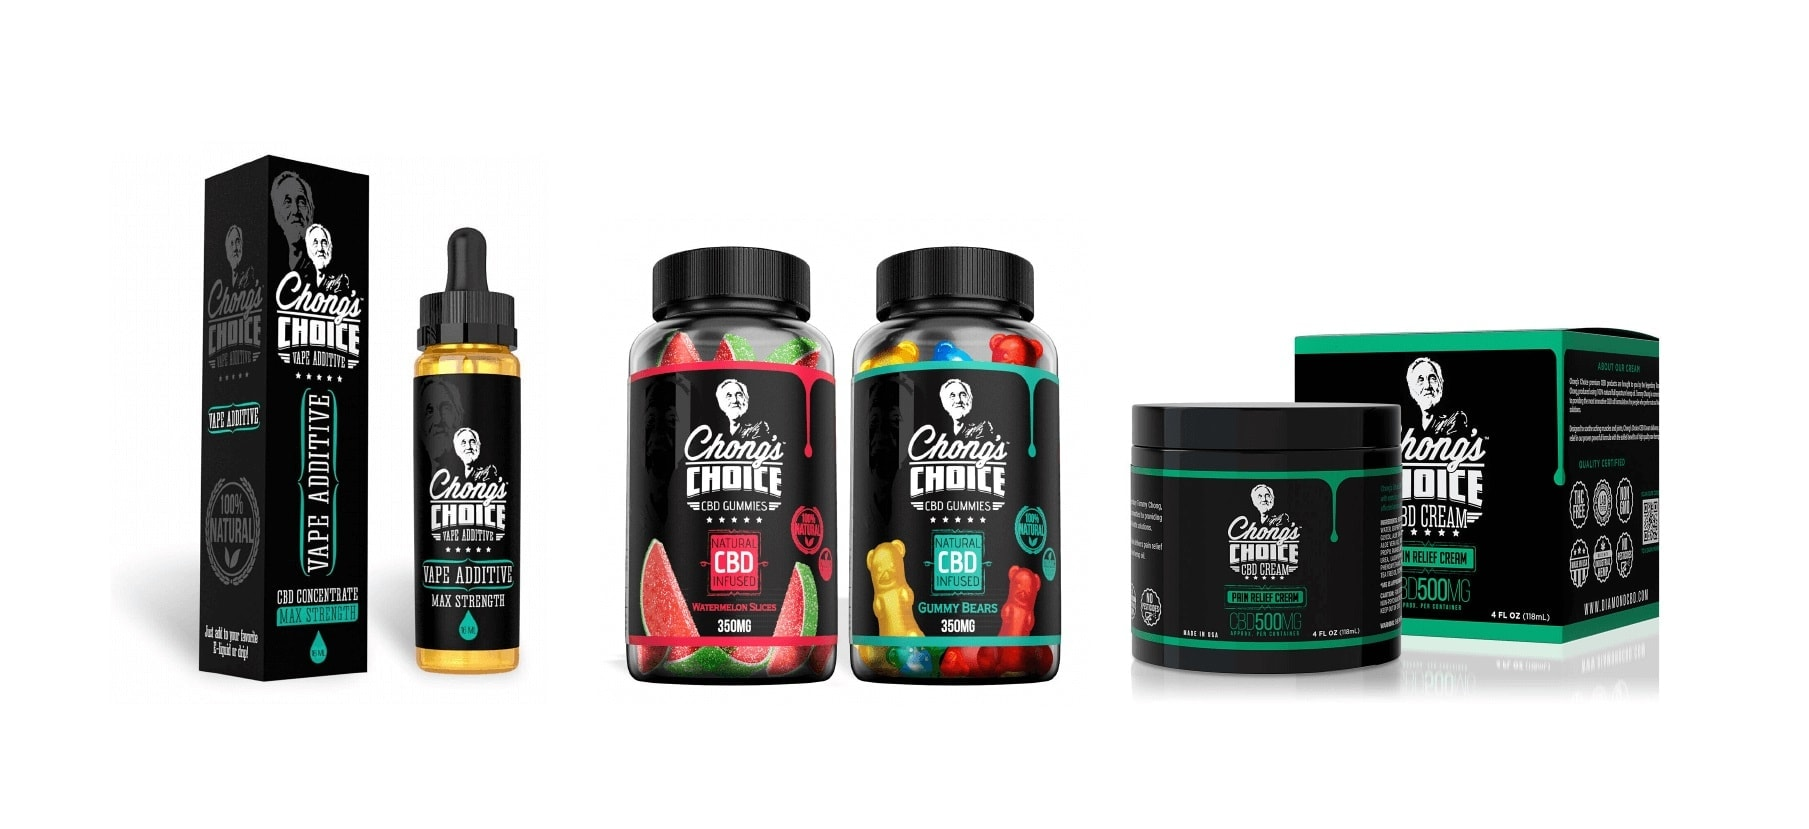 Chong's Choice CBD Products: CBD Gummies, CBD Vape Additives, CBD Creams